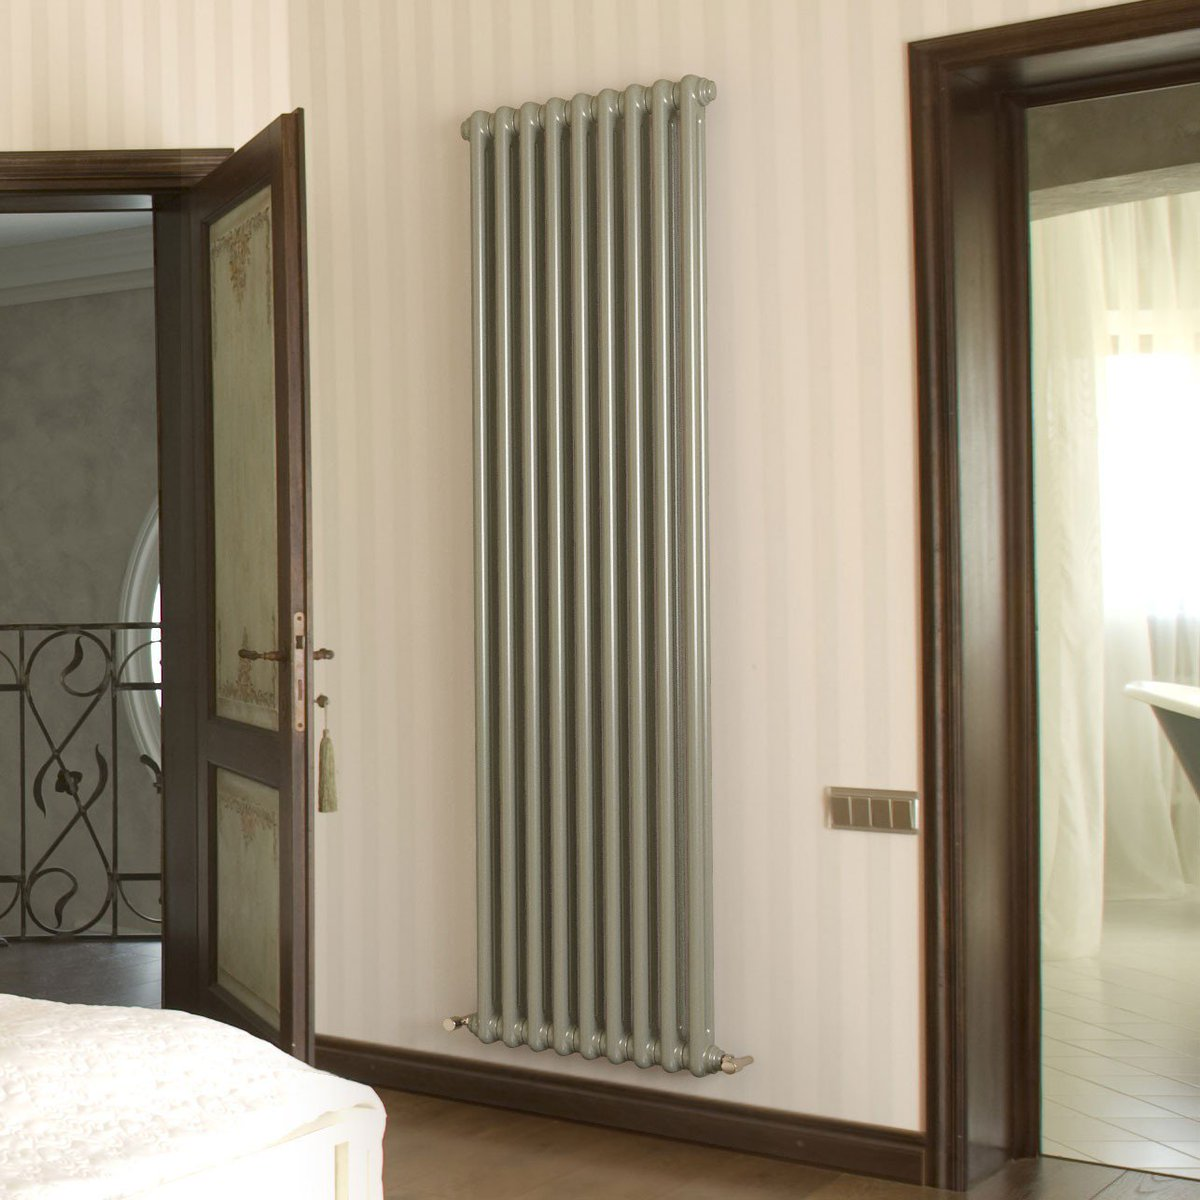 The Heating Boutique on Twitter: